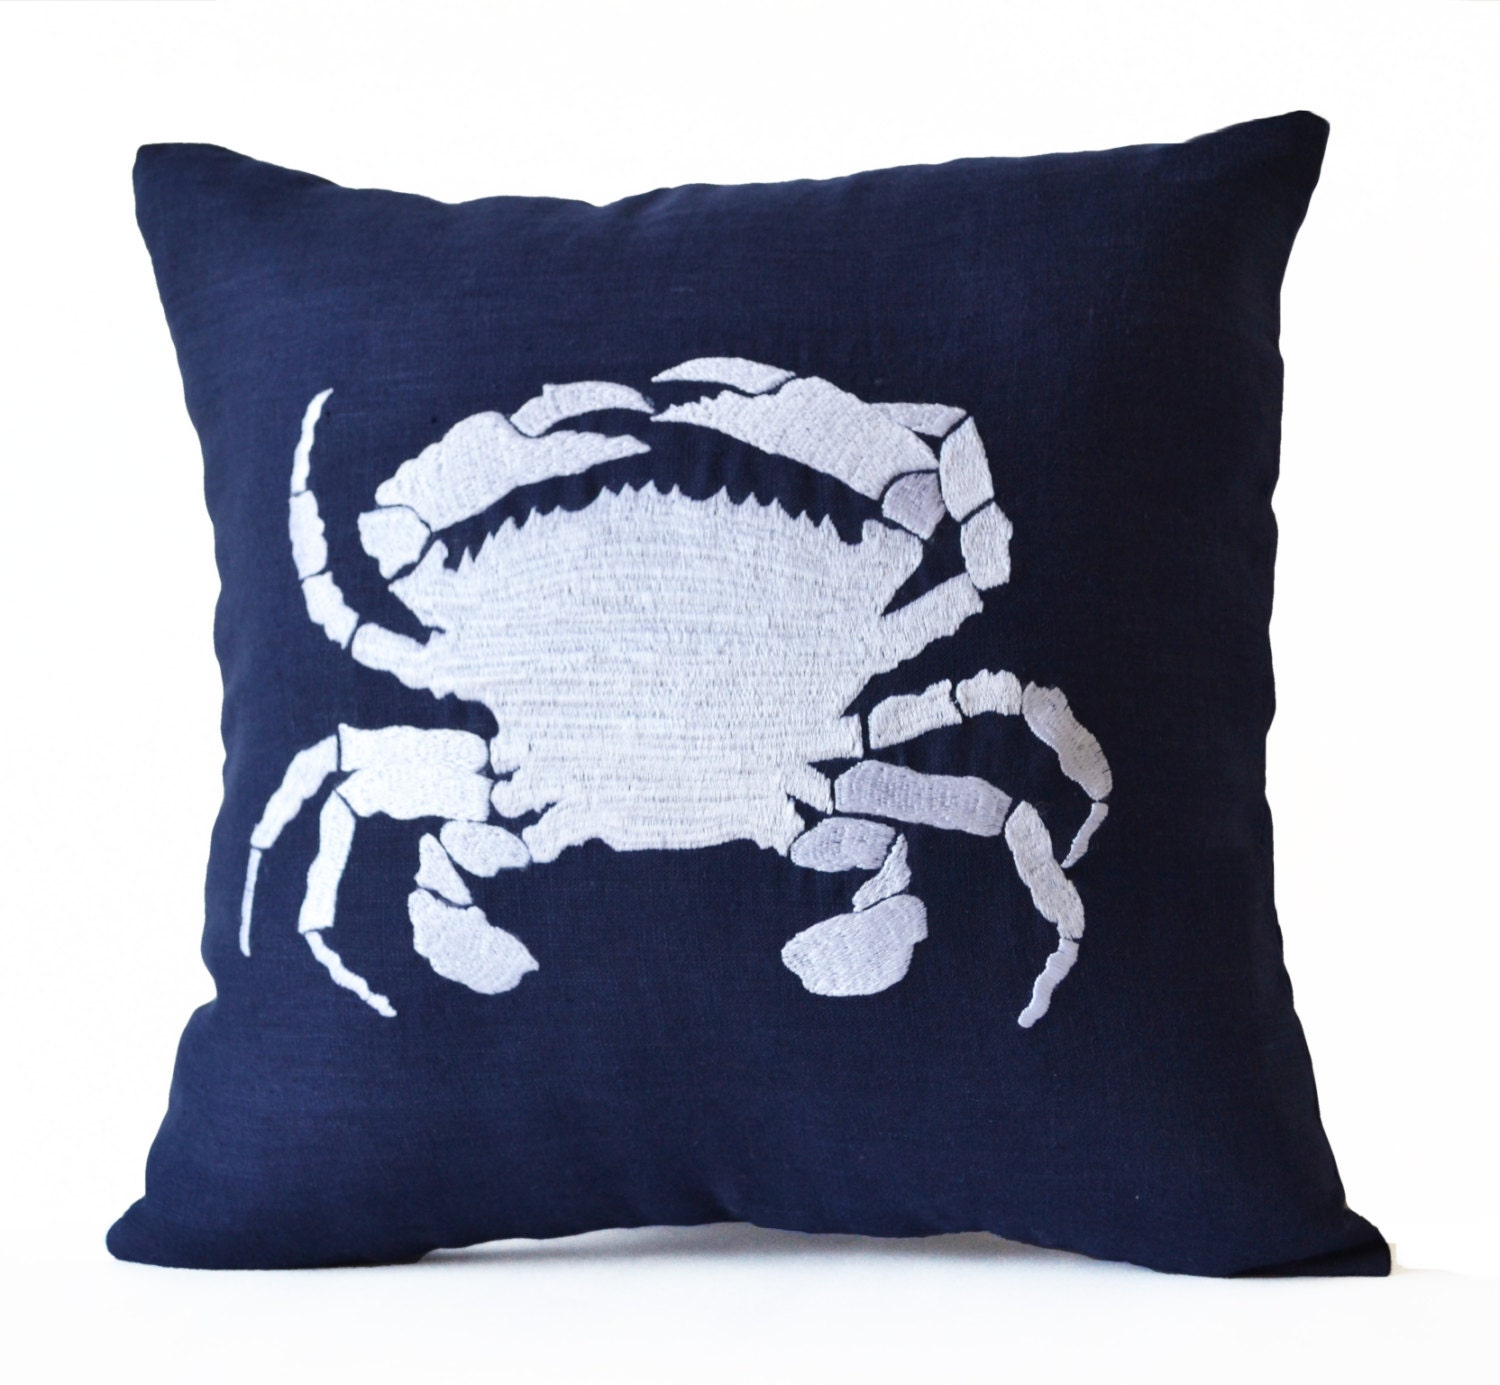 Navy Throw Pillow Sets : Navy Blue Throw Pillow Case Beach Decor Nautical Pillows